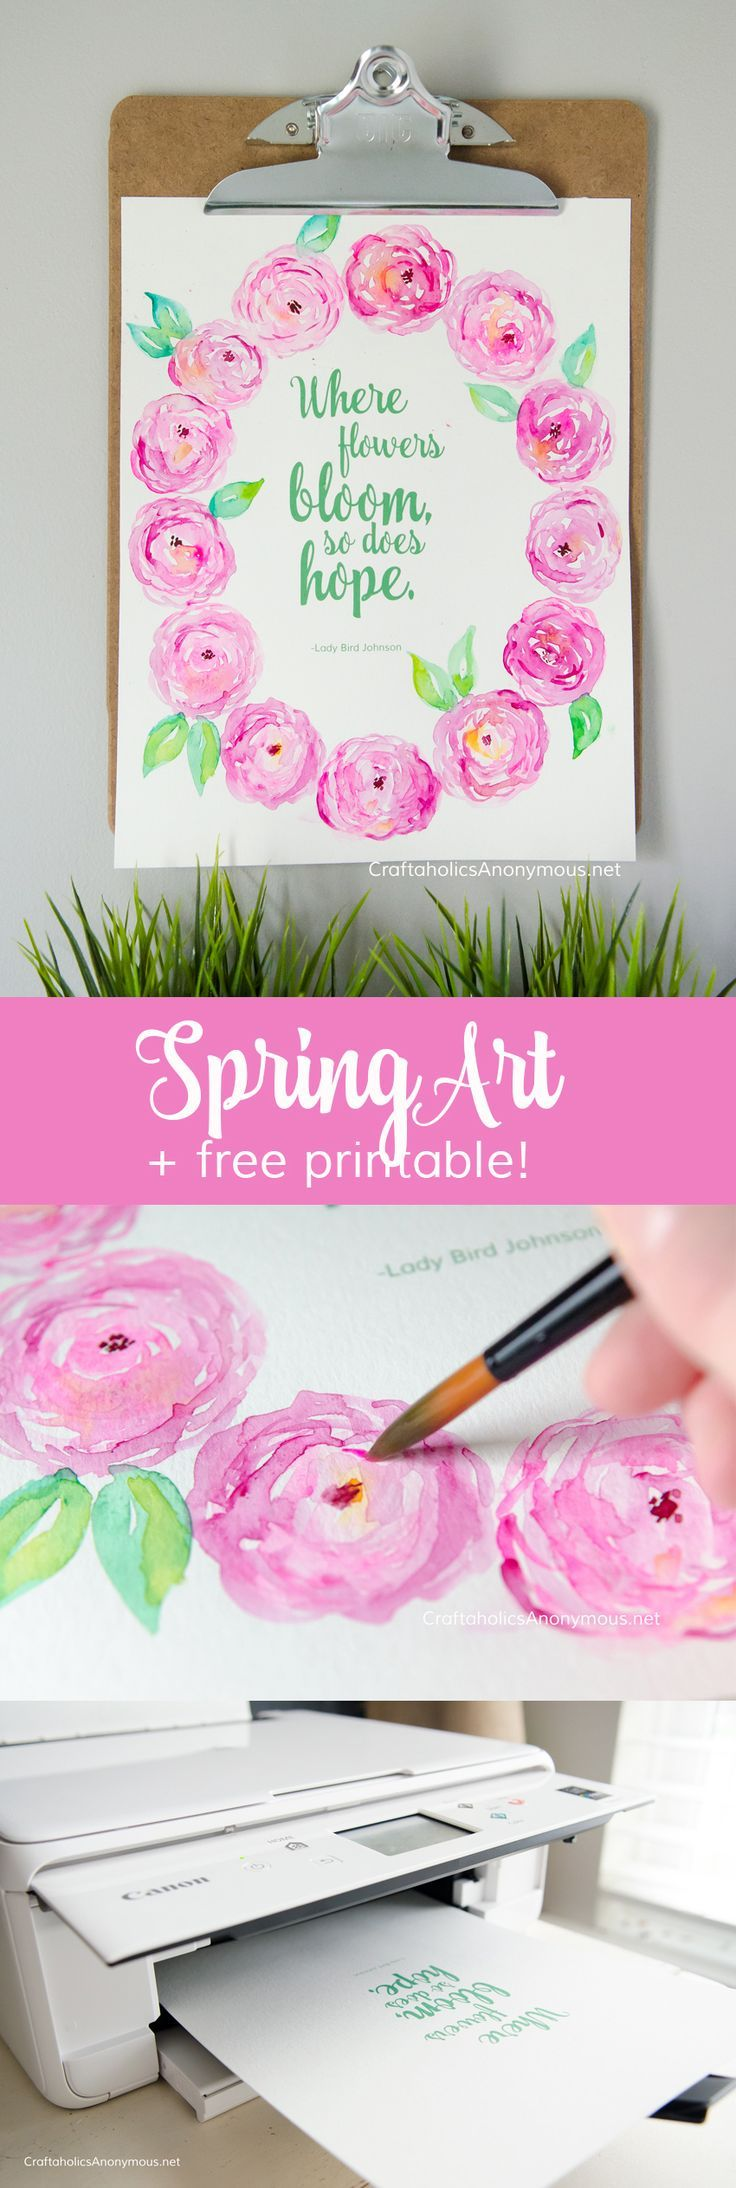 Spring crafts are good for the soul!